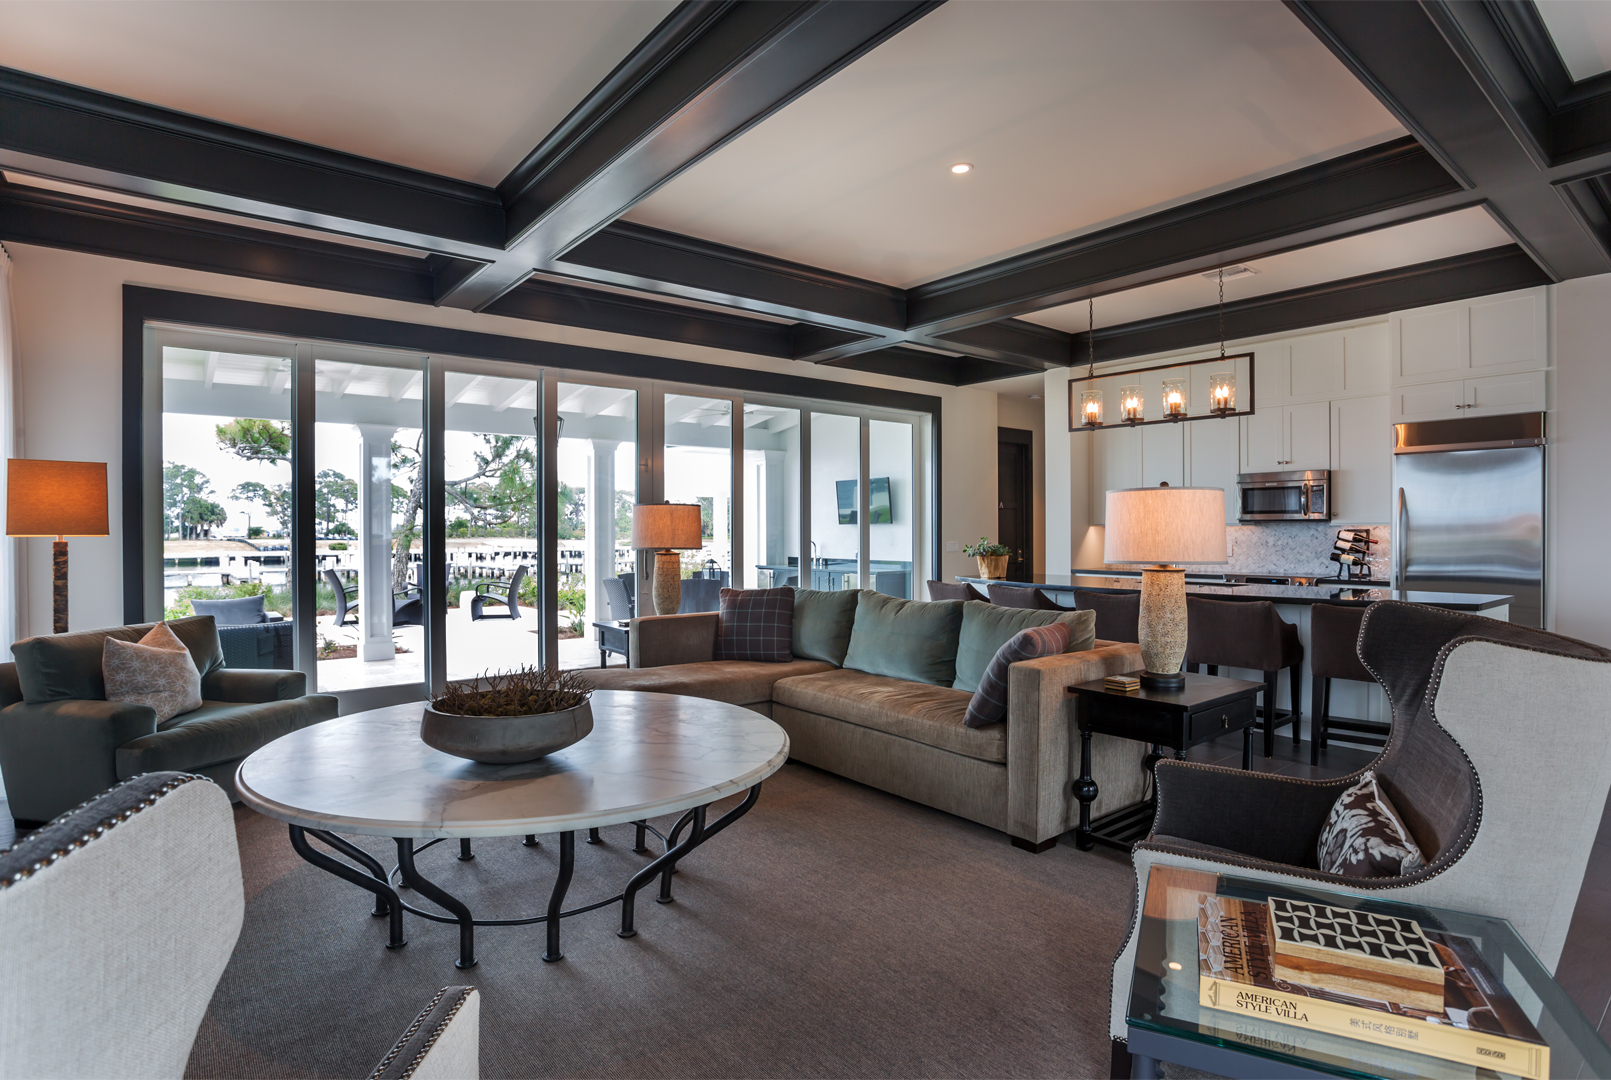 Firm sets unprecedented us record for award winning for Model home interior design firms